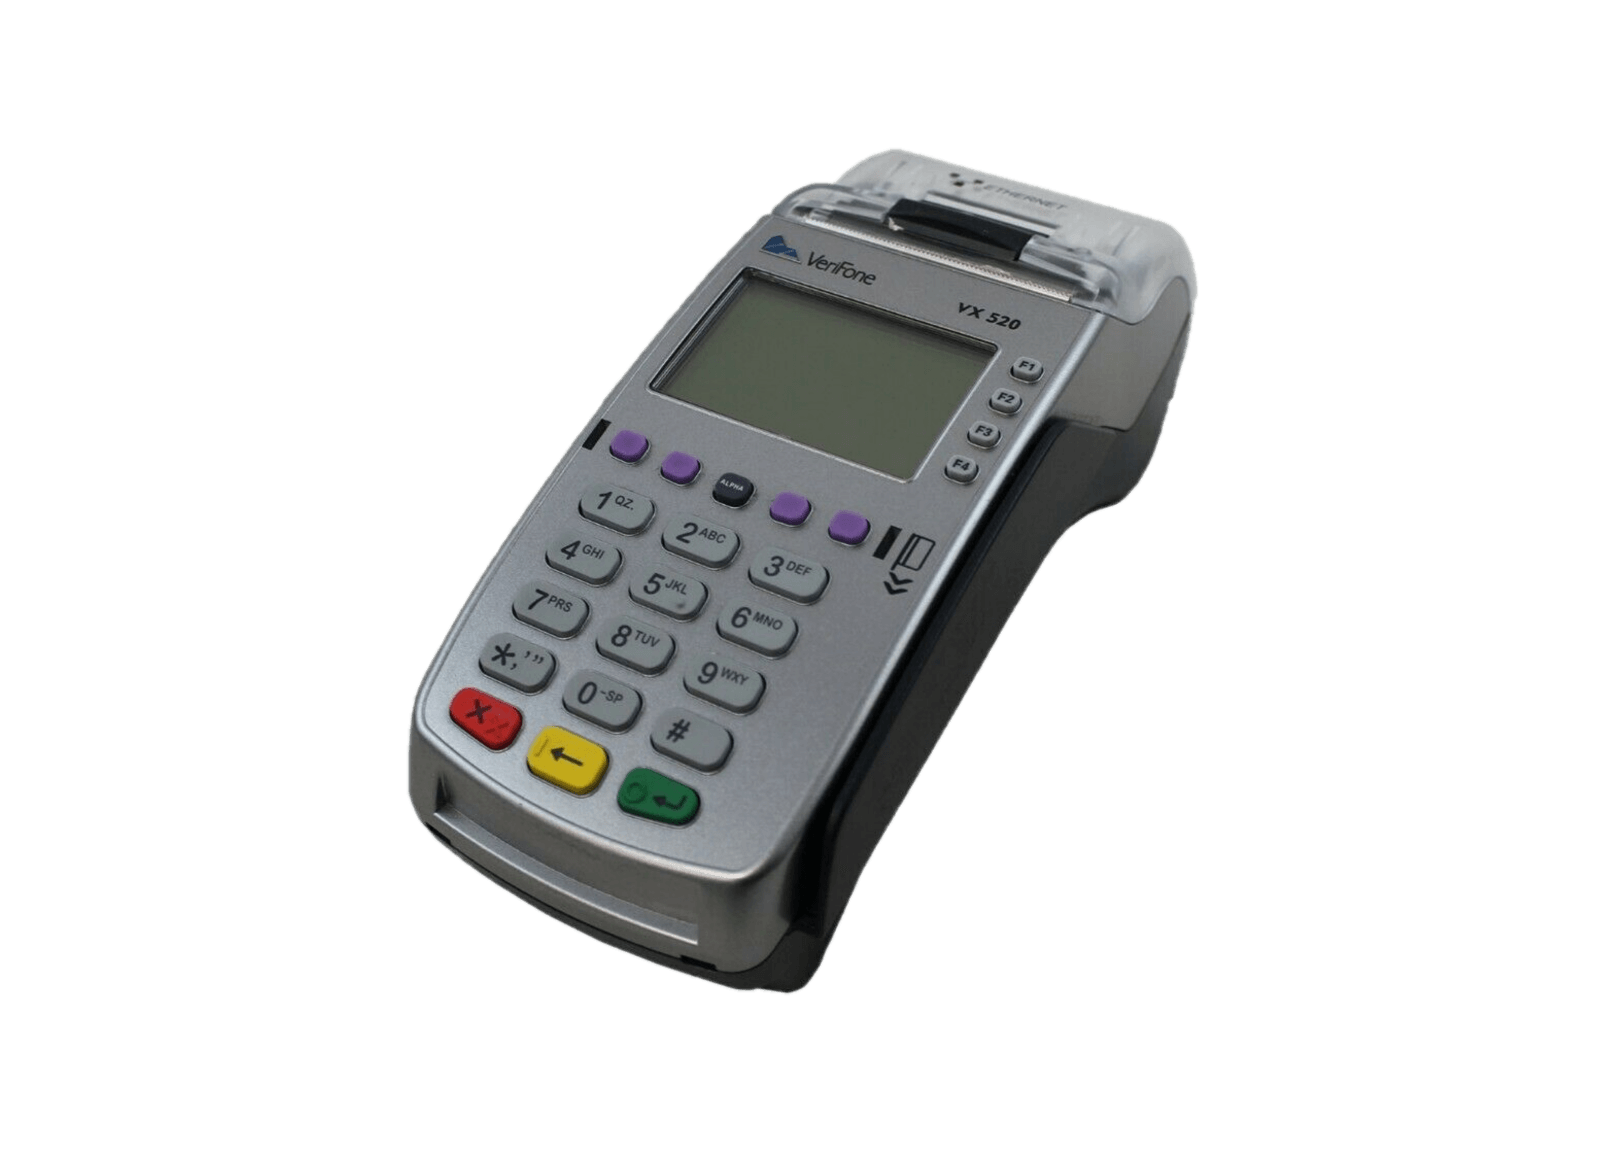 The VX520 is everything a countertop device should be. Delivering unprecedented performance, lighting-fast speeds, and uncompromised security, this power-packed payment device works hard so you don't have to.